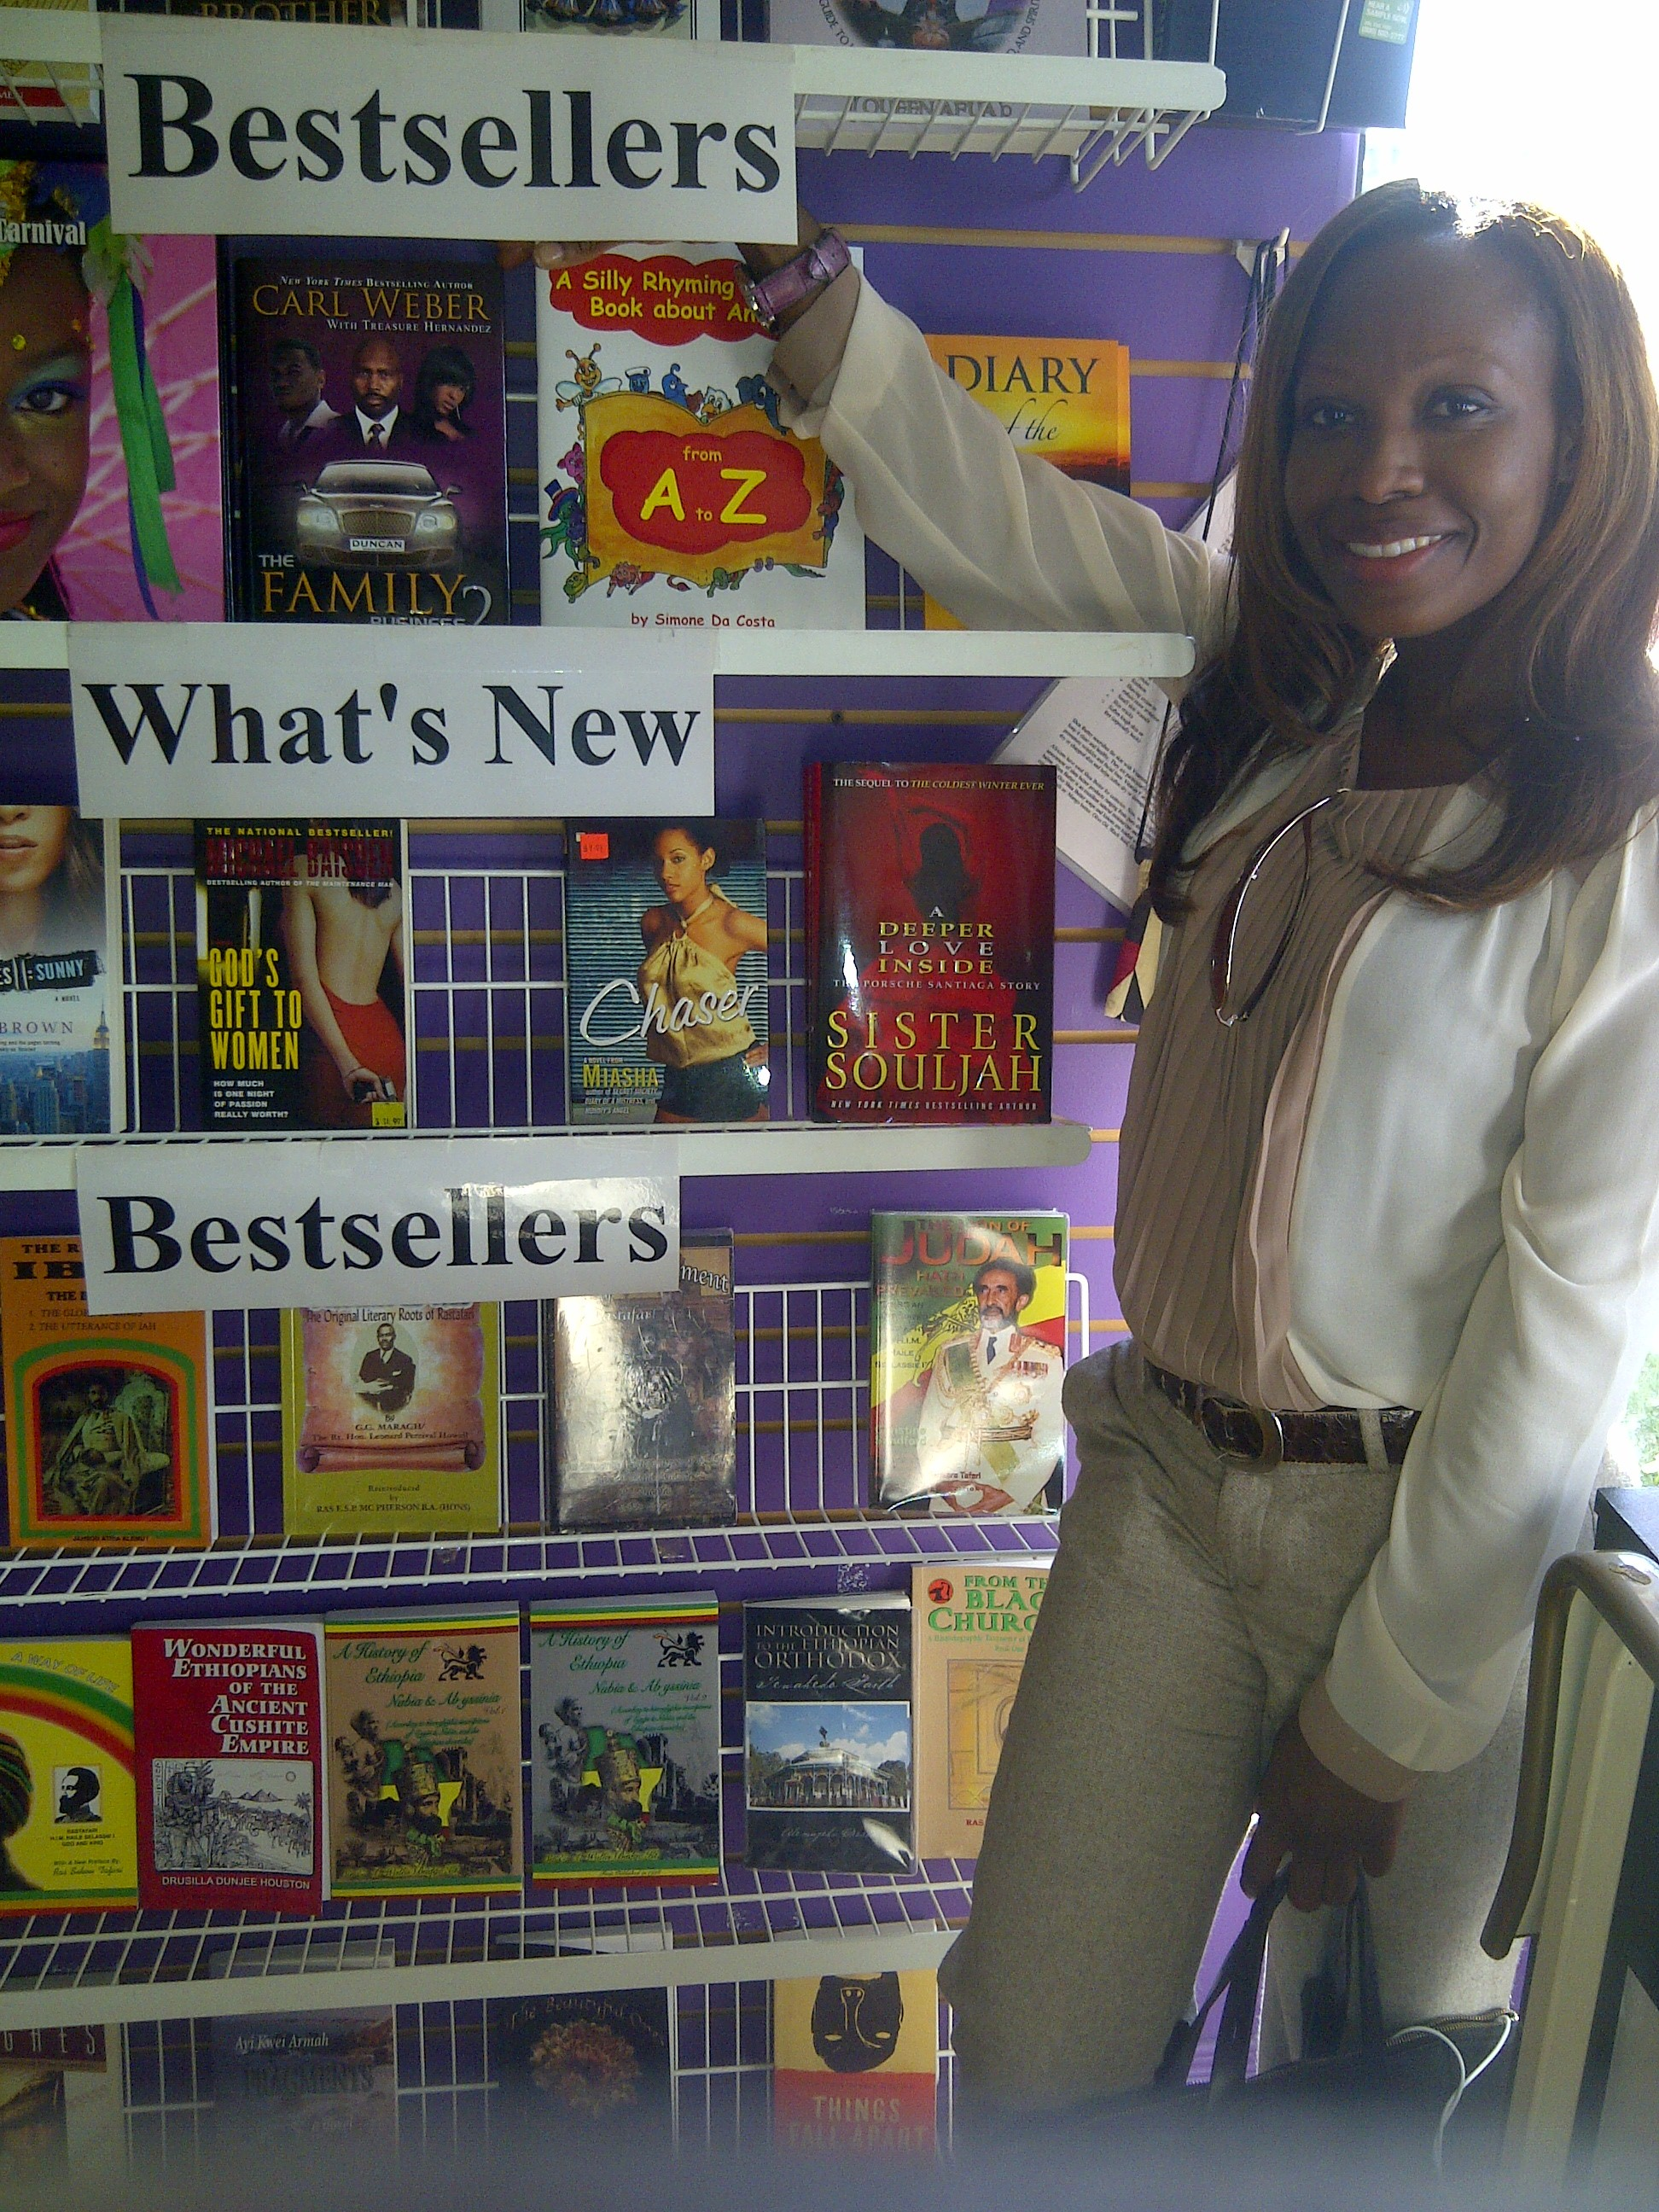 My book at Knowledge Book Store 9 18 2013 - pix 2